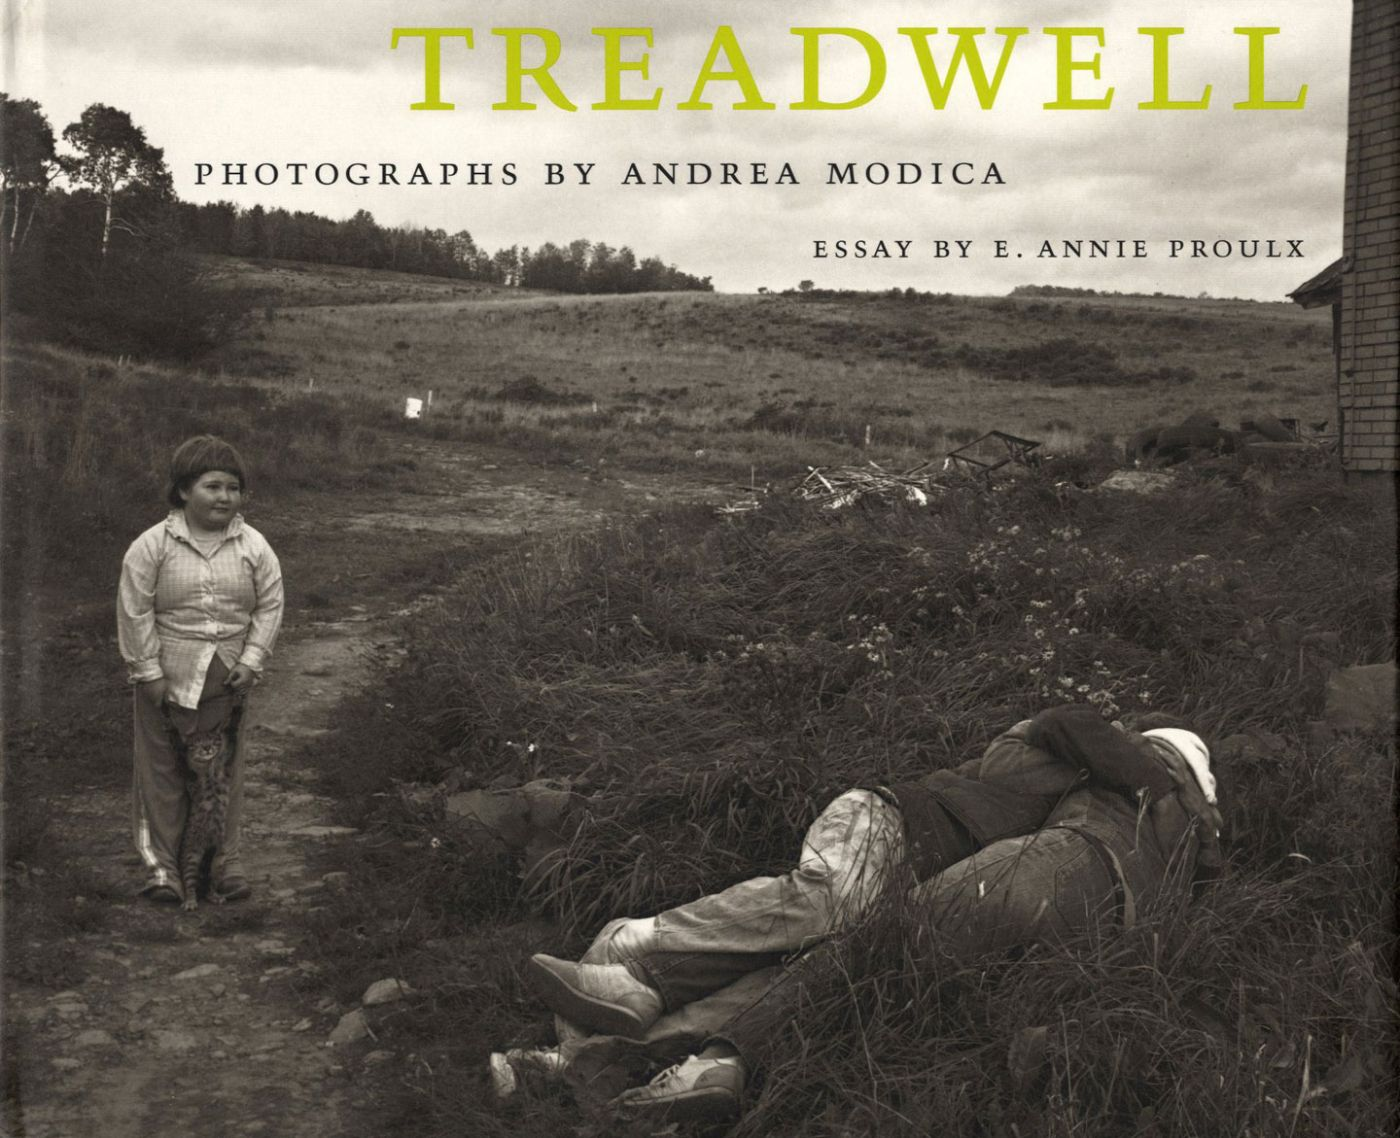 Andrea Modica: Treadwell